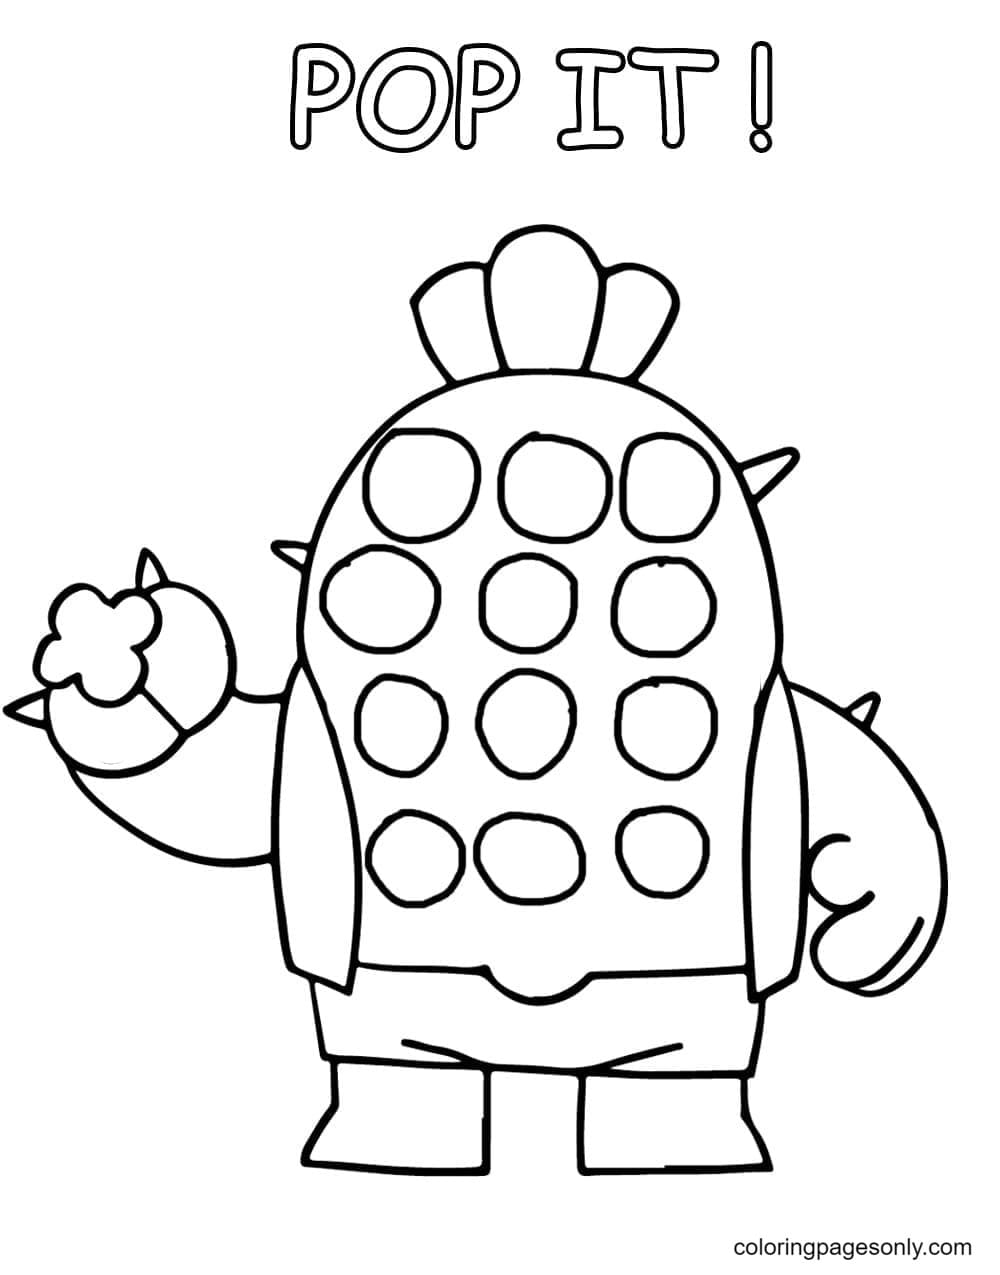 Pop It Spike Brawl Stars Coloring Page